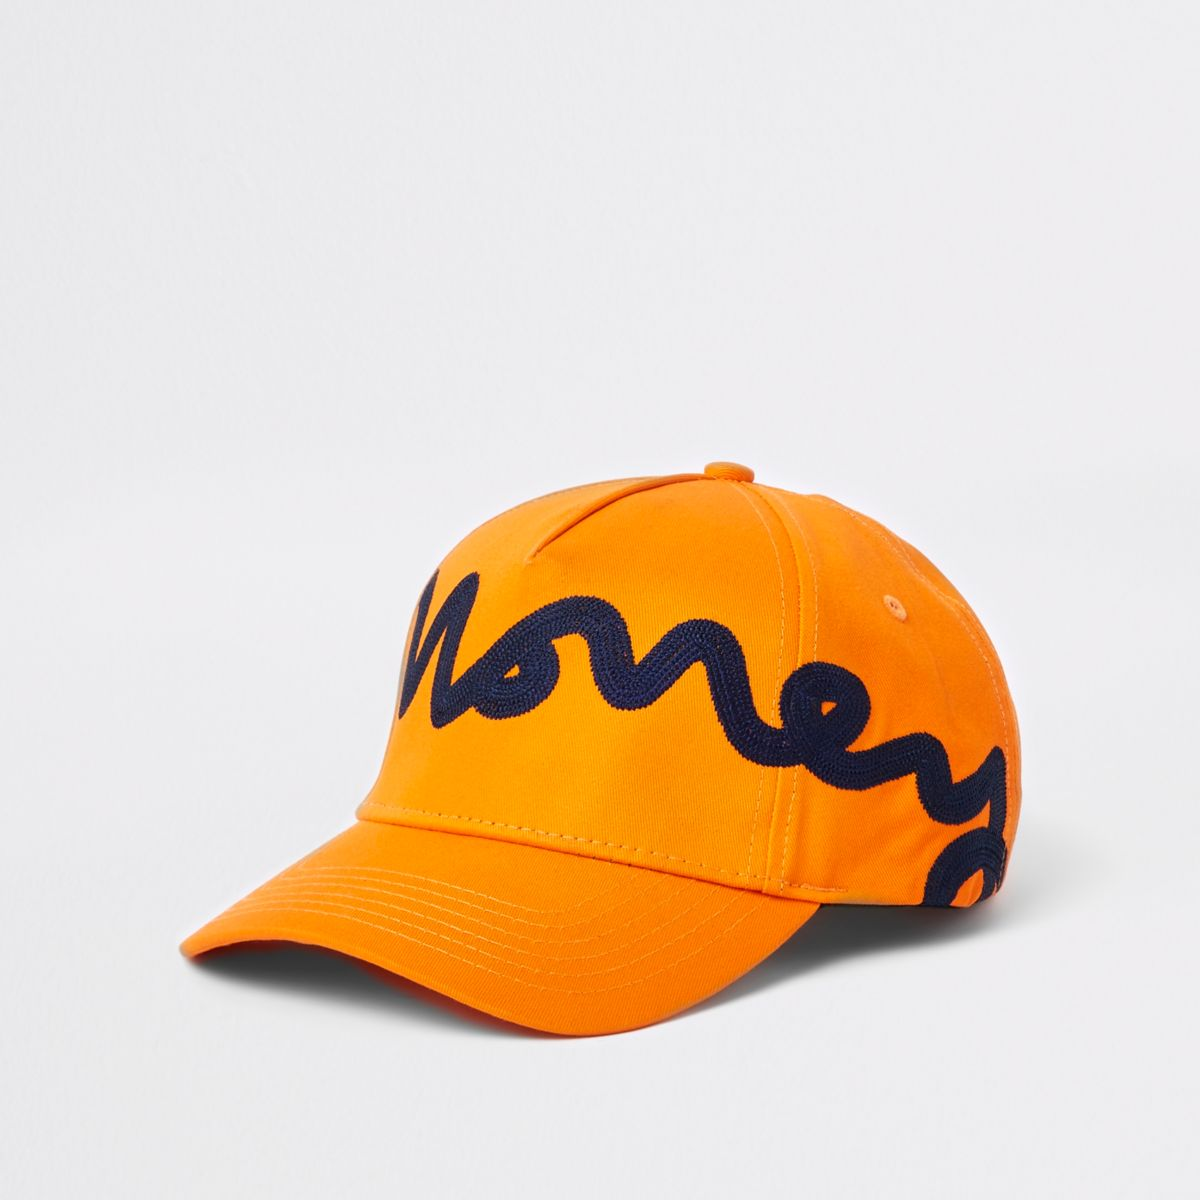 Money Clothing orange snapback cap